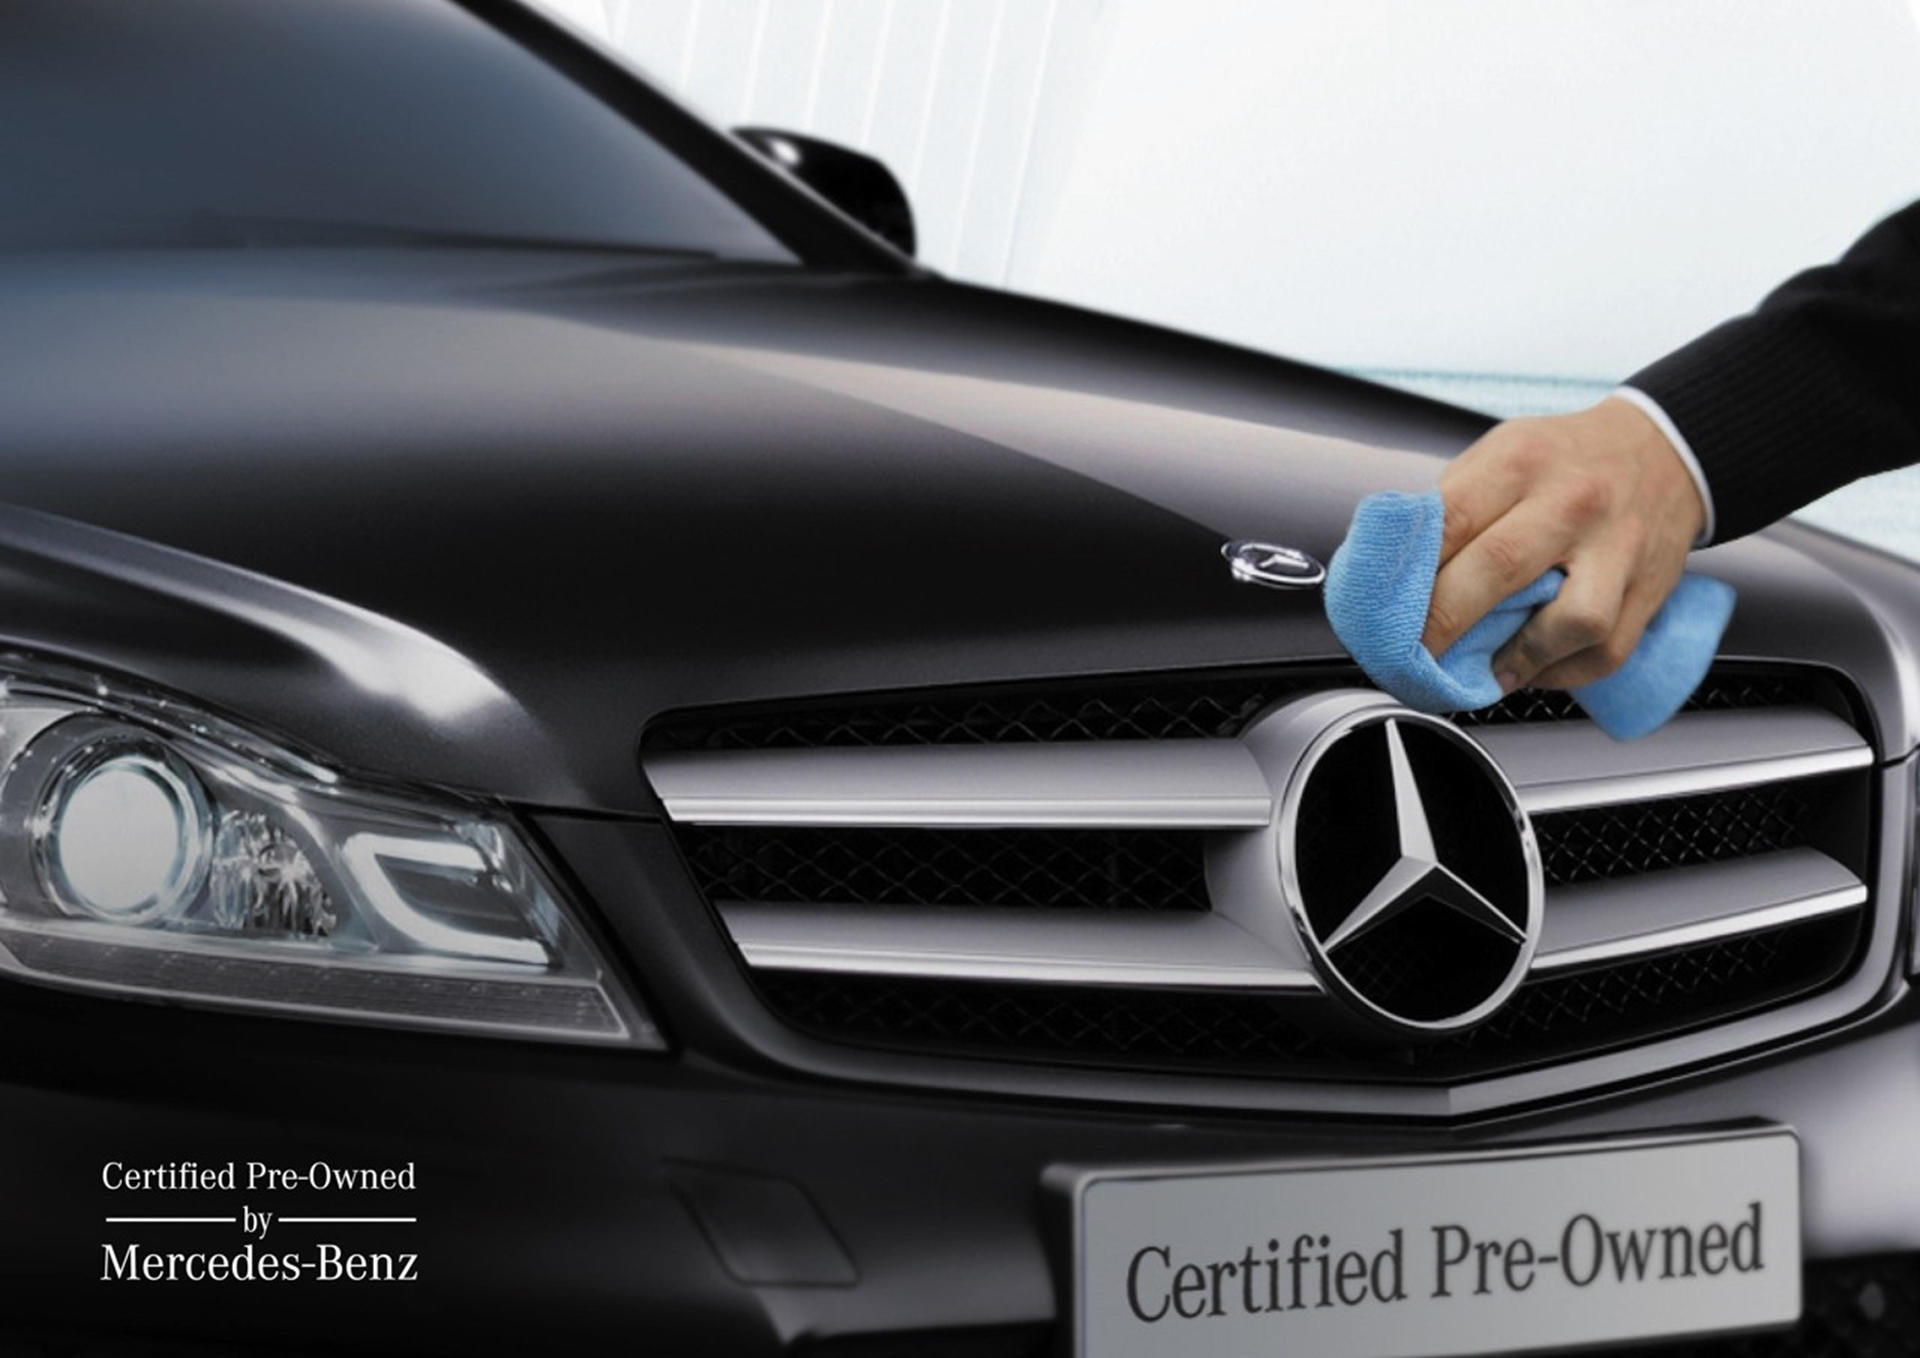 Mercedes benz certified pre owned specials for Mercedes benz pre owned vehicles